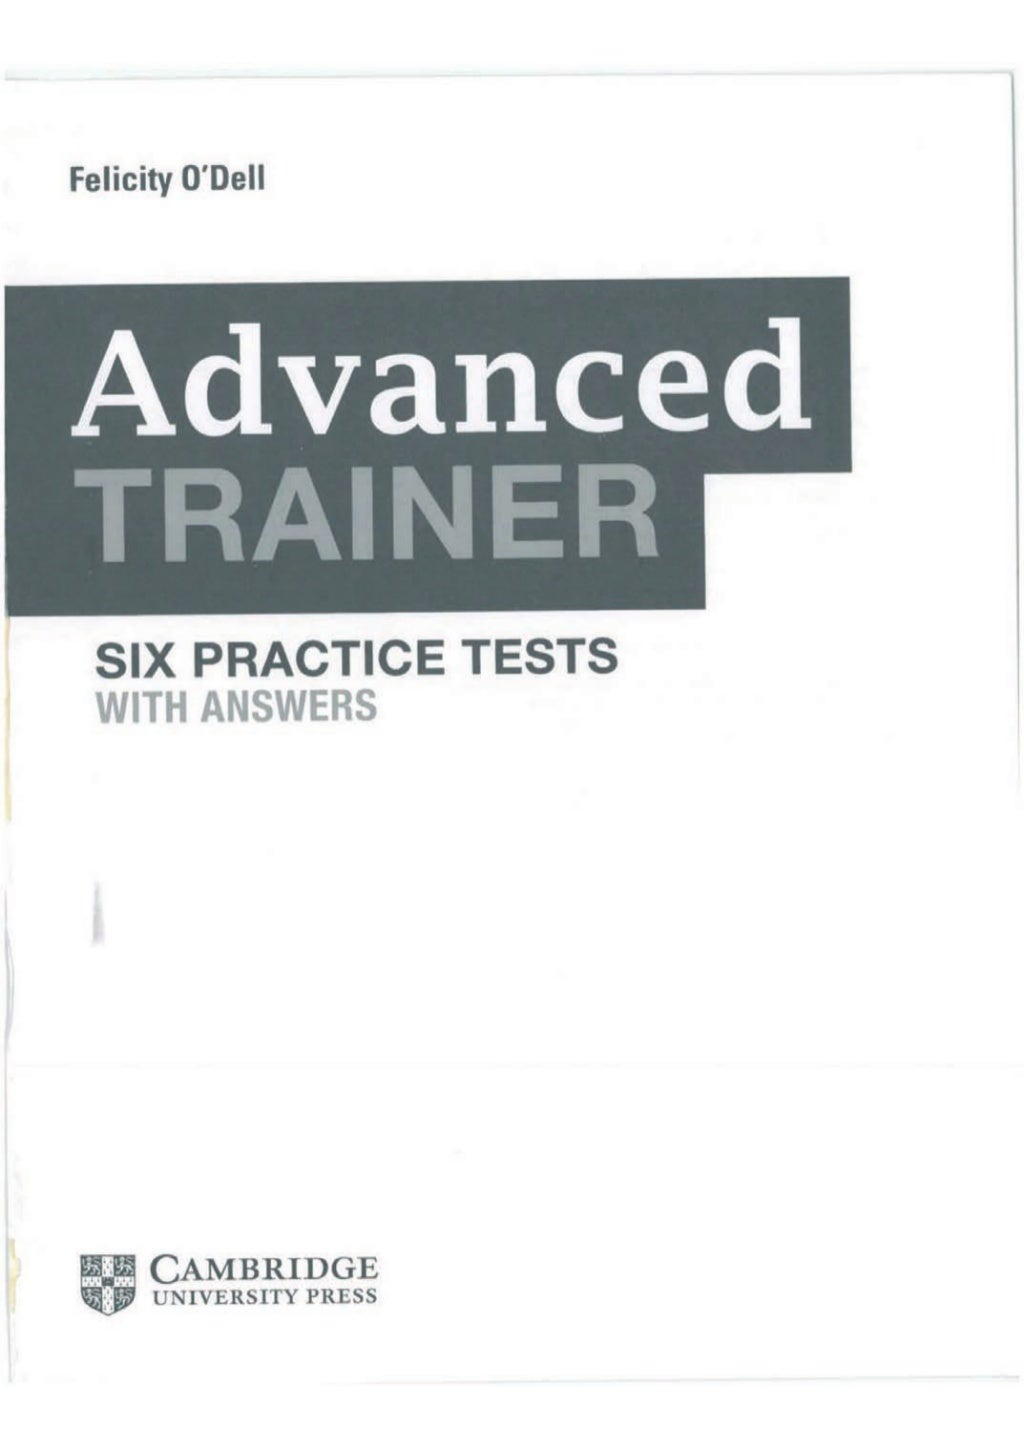 Advanced trainer 6 practice tests with answers book4joy (1) page 2